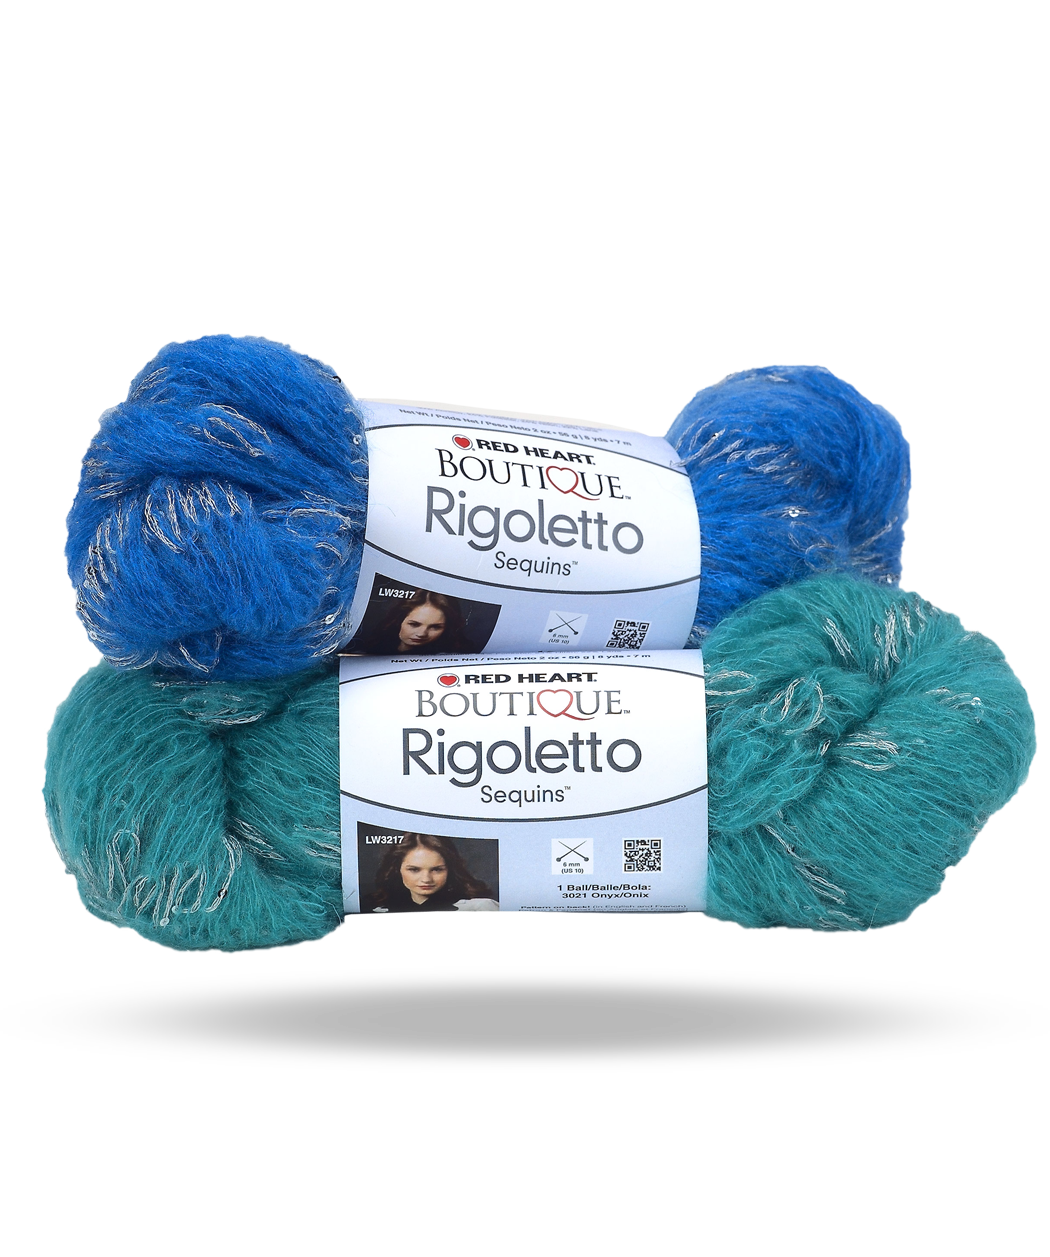 Red Heart Boutique Rigoletto Sequins Yarn is beautiful and romantic ...